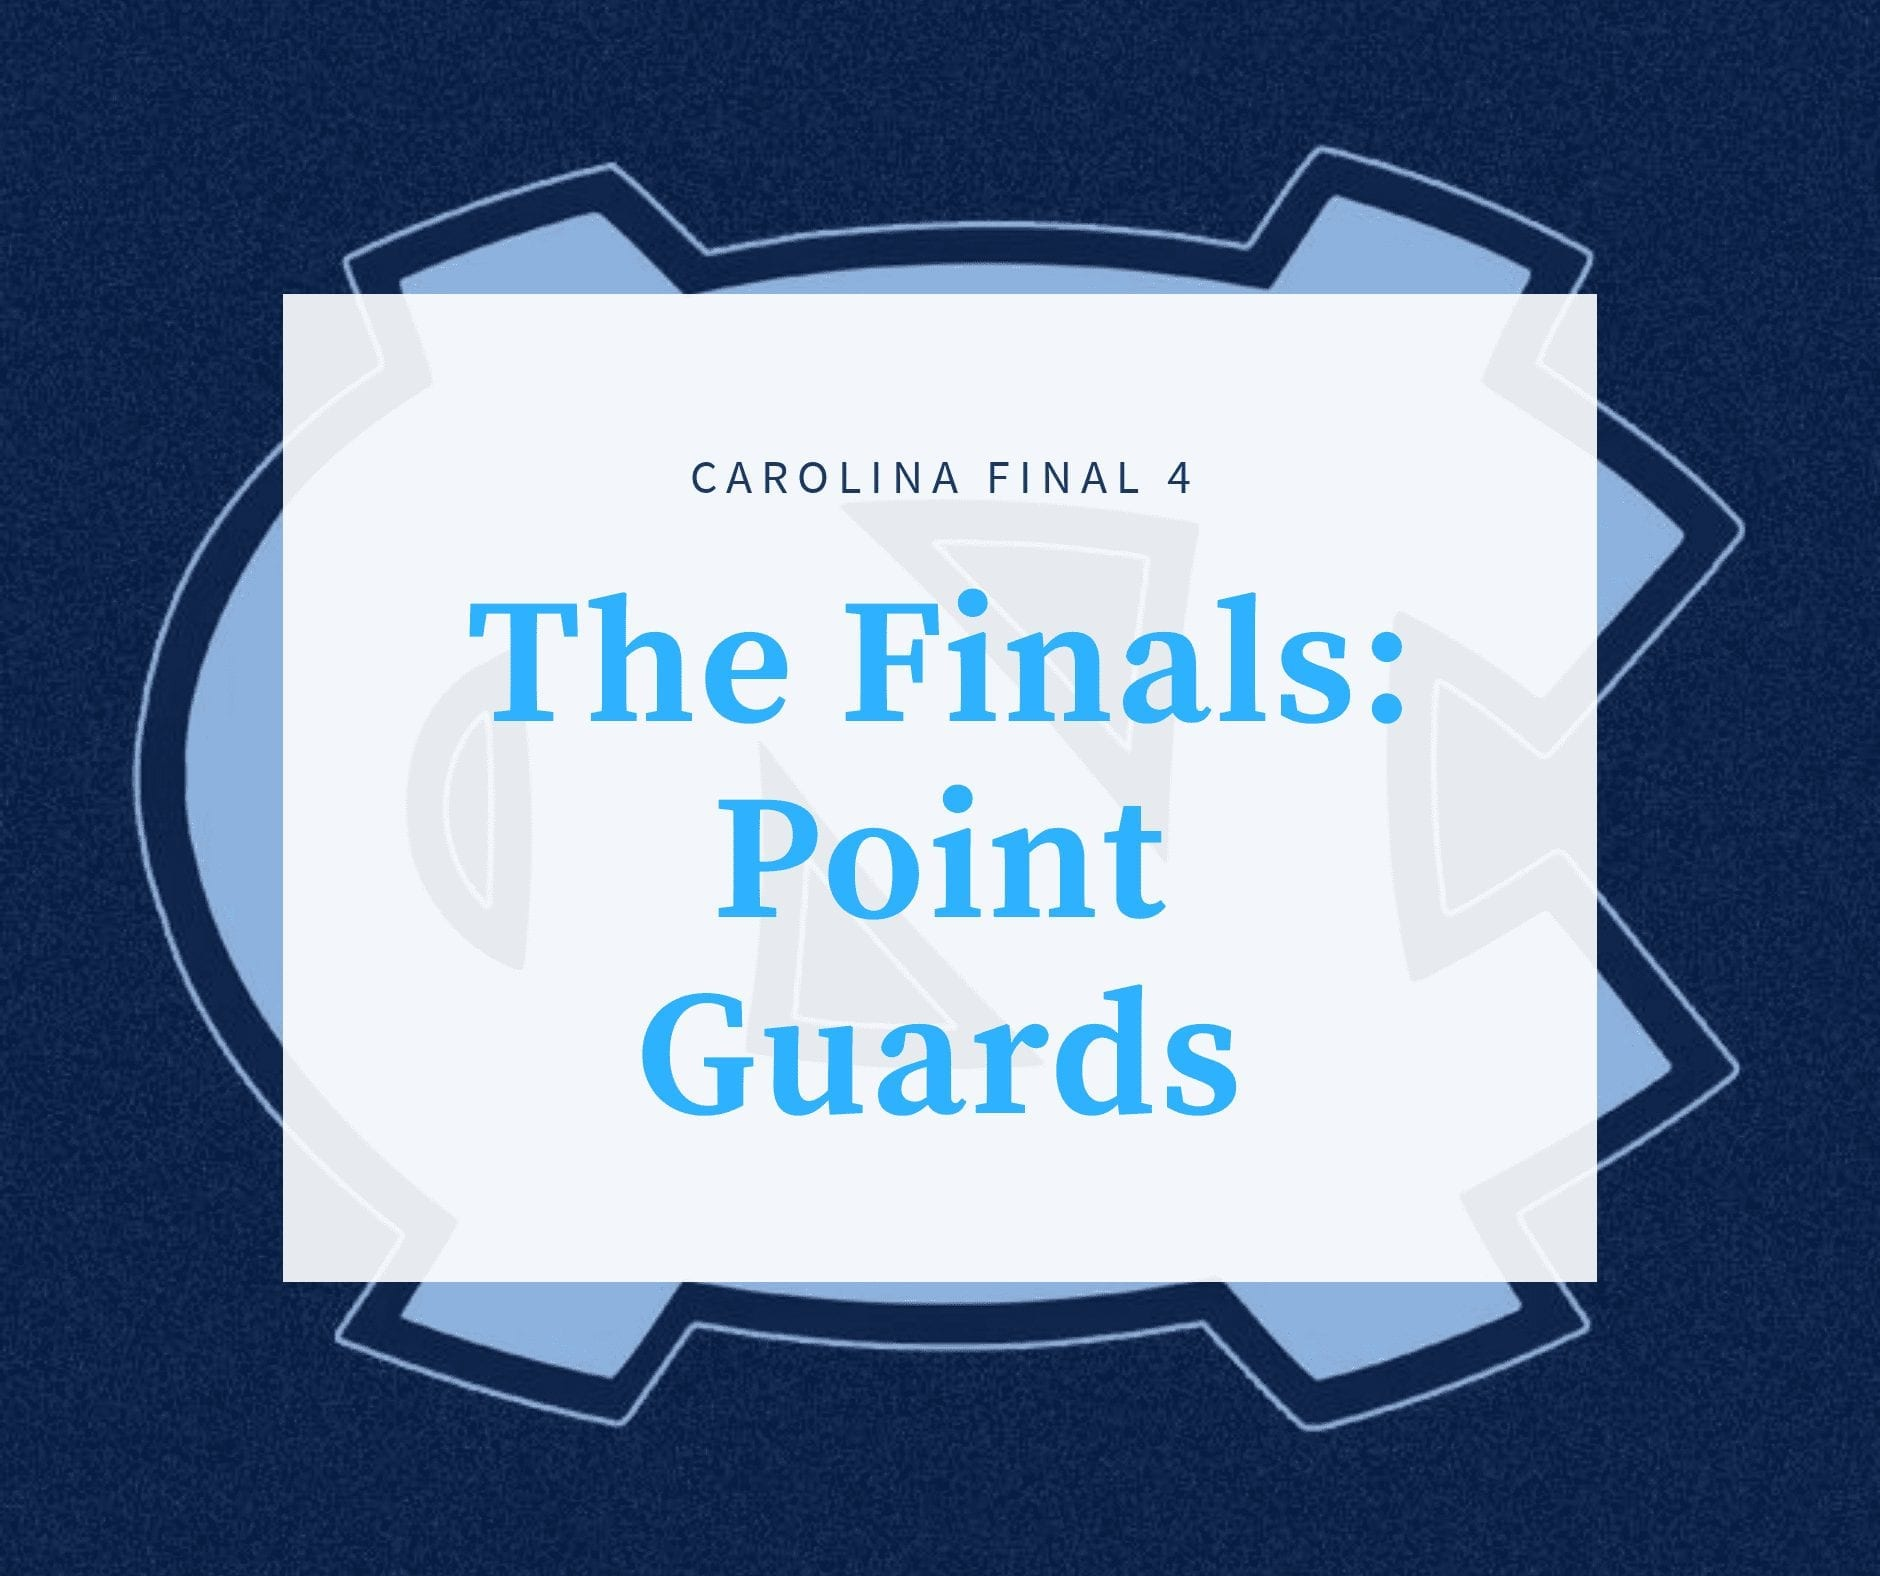 PeaceDot Sports Presents              UNC Point Guards:Final4 TheFinals via @PhillyWhat